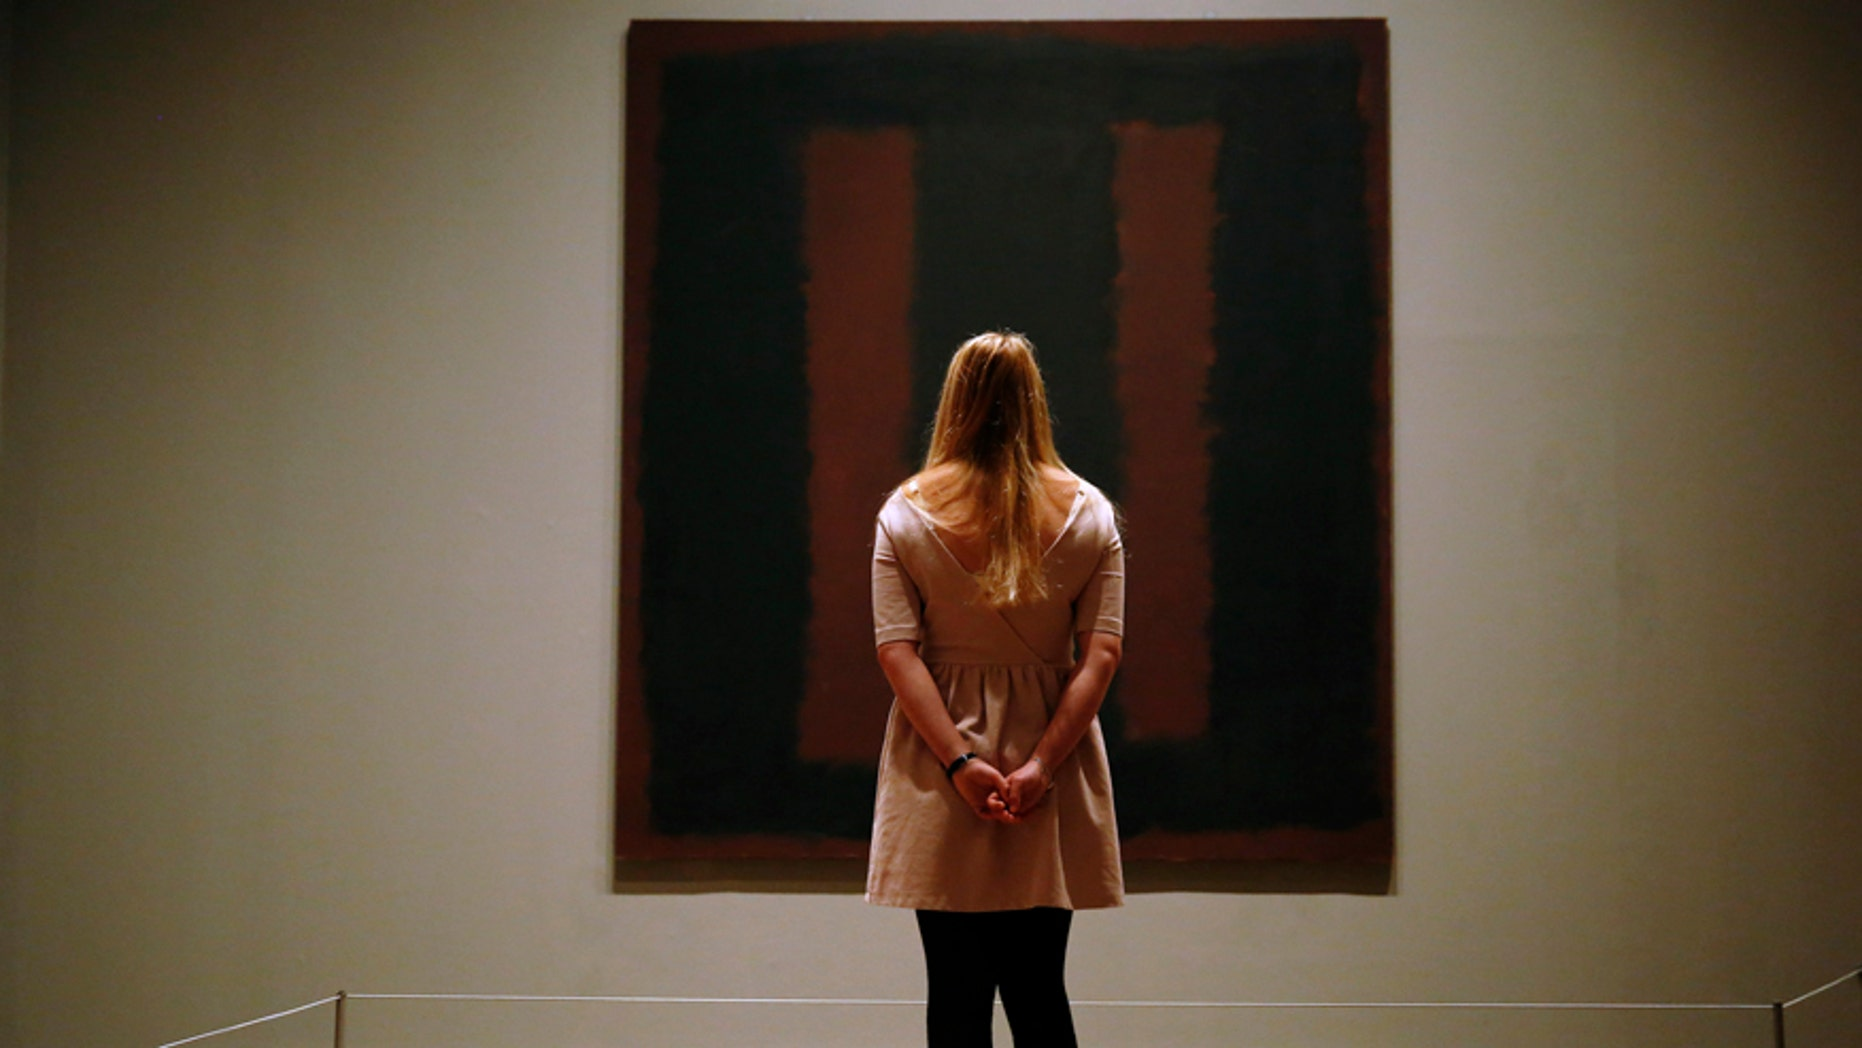 "A member of Tate staff poses with the restored Mark Rothko artwork ""Black on Maroon, 1958"" at the Tate Modern in London May 13, 2014. The picture was vandalised in 2012 by Polish man Wlodzimierz Umaniec - known also as Vladimir Umanets - who wrote ""Vladimir Umanets '12 A potential piece of yellowism"" on the canvas. He has since been given a jail sentence for the action. REUTERS/Luke MacGregor  (BRITAIN - Tags: CRIME LAW SOCIETY TPX IMAGES OF THE DAY) - RTR3OWAI"